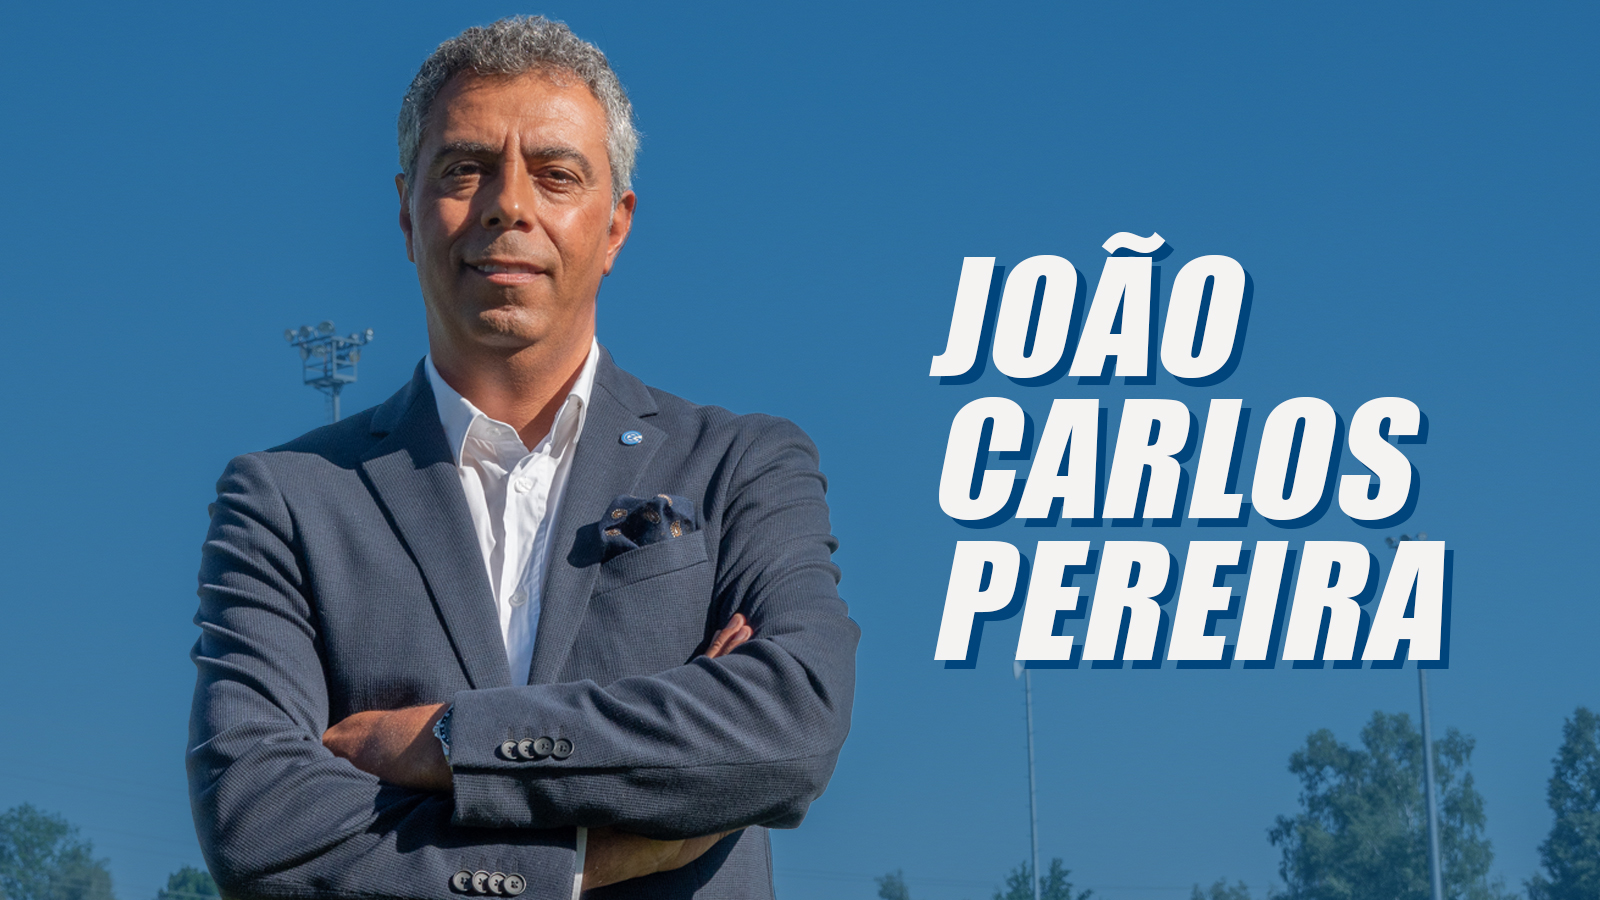 86TV | JOÃO CARLOS PEREIRA IM INTERVIEW